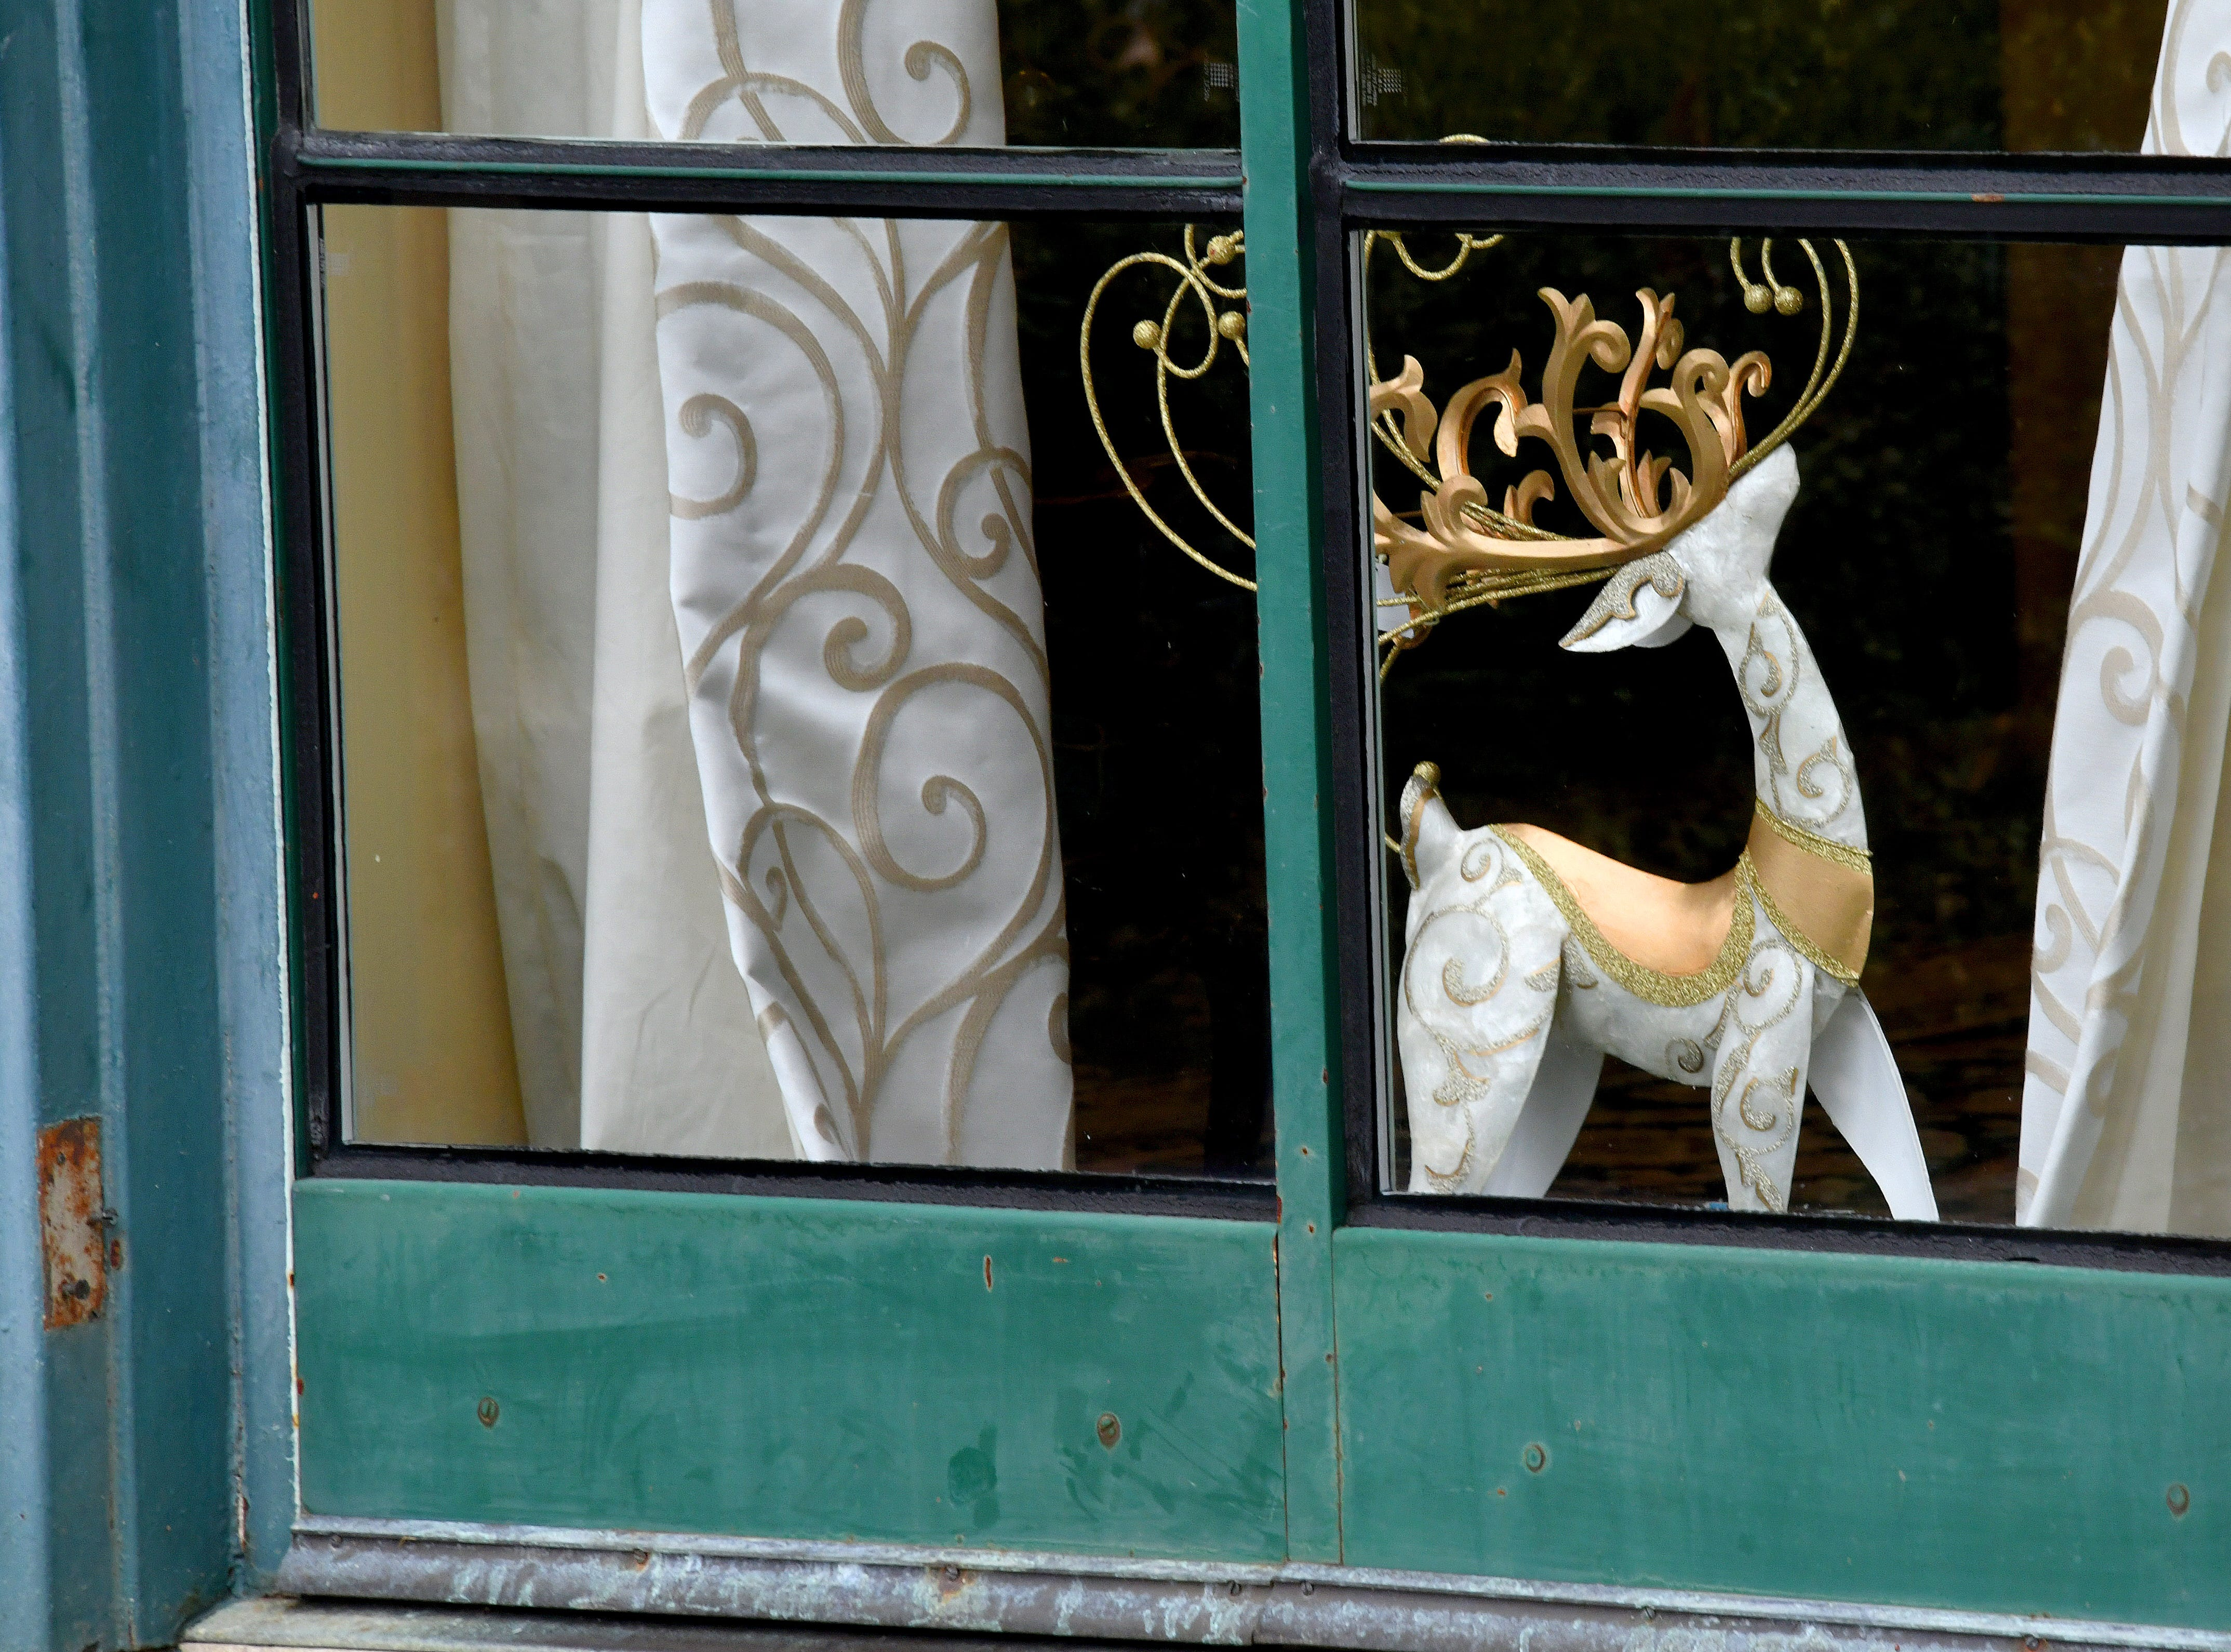 A whimsical reindeer stands on the window sill of the dining room, visible from the rose garden behind the manor.